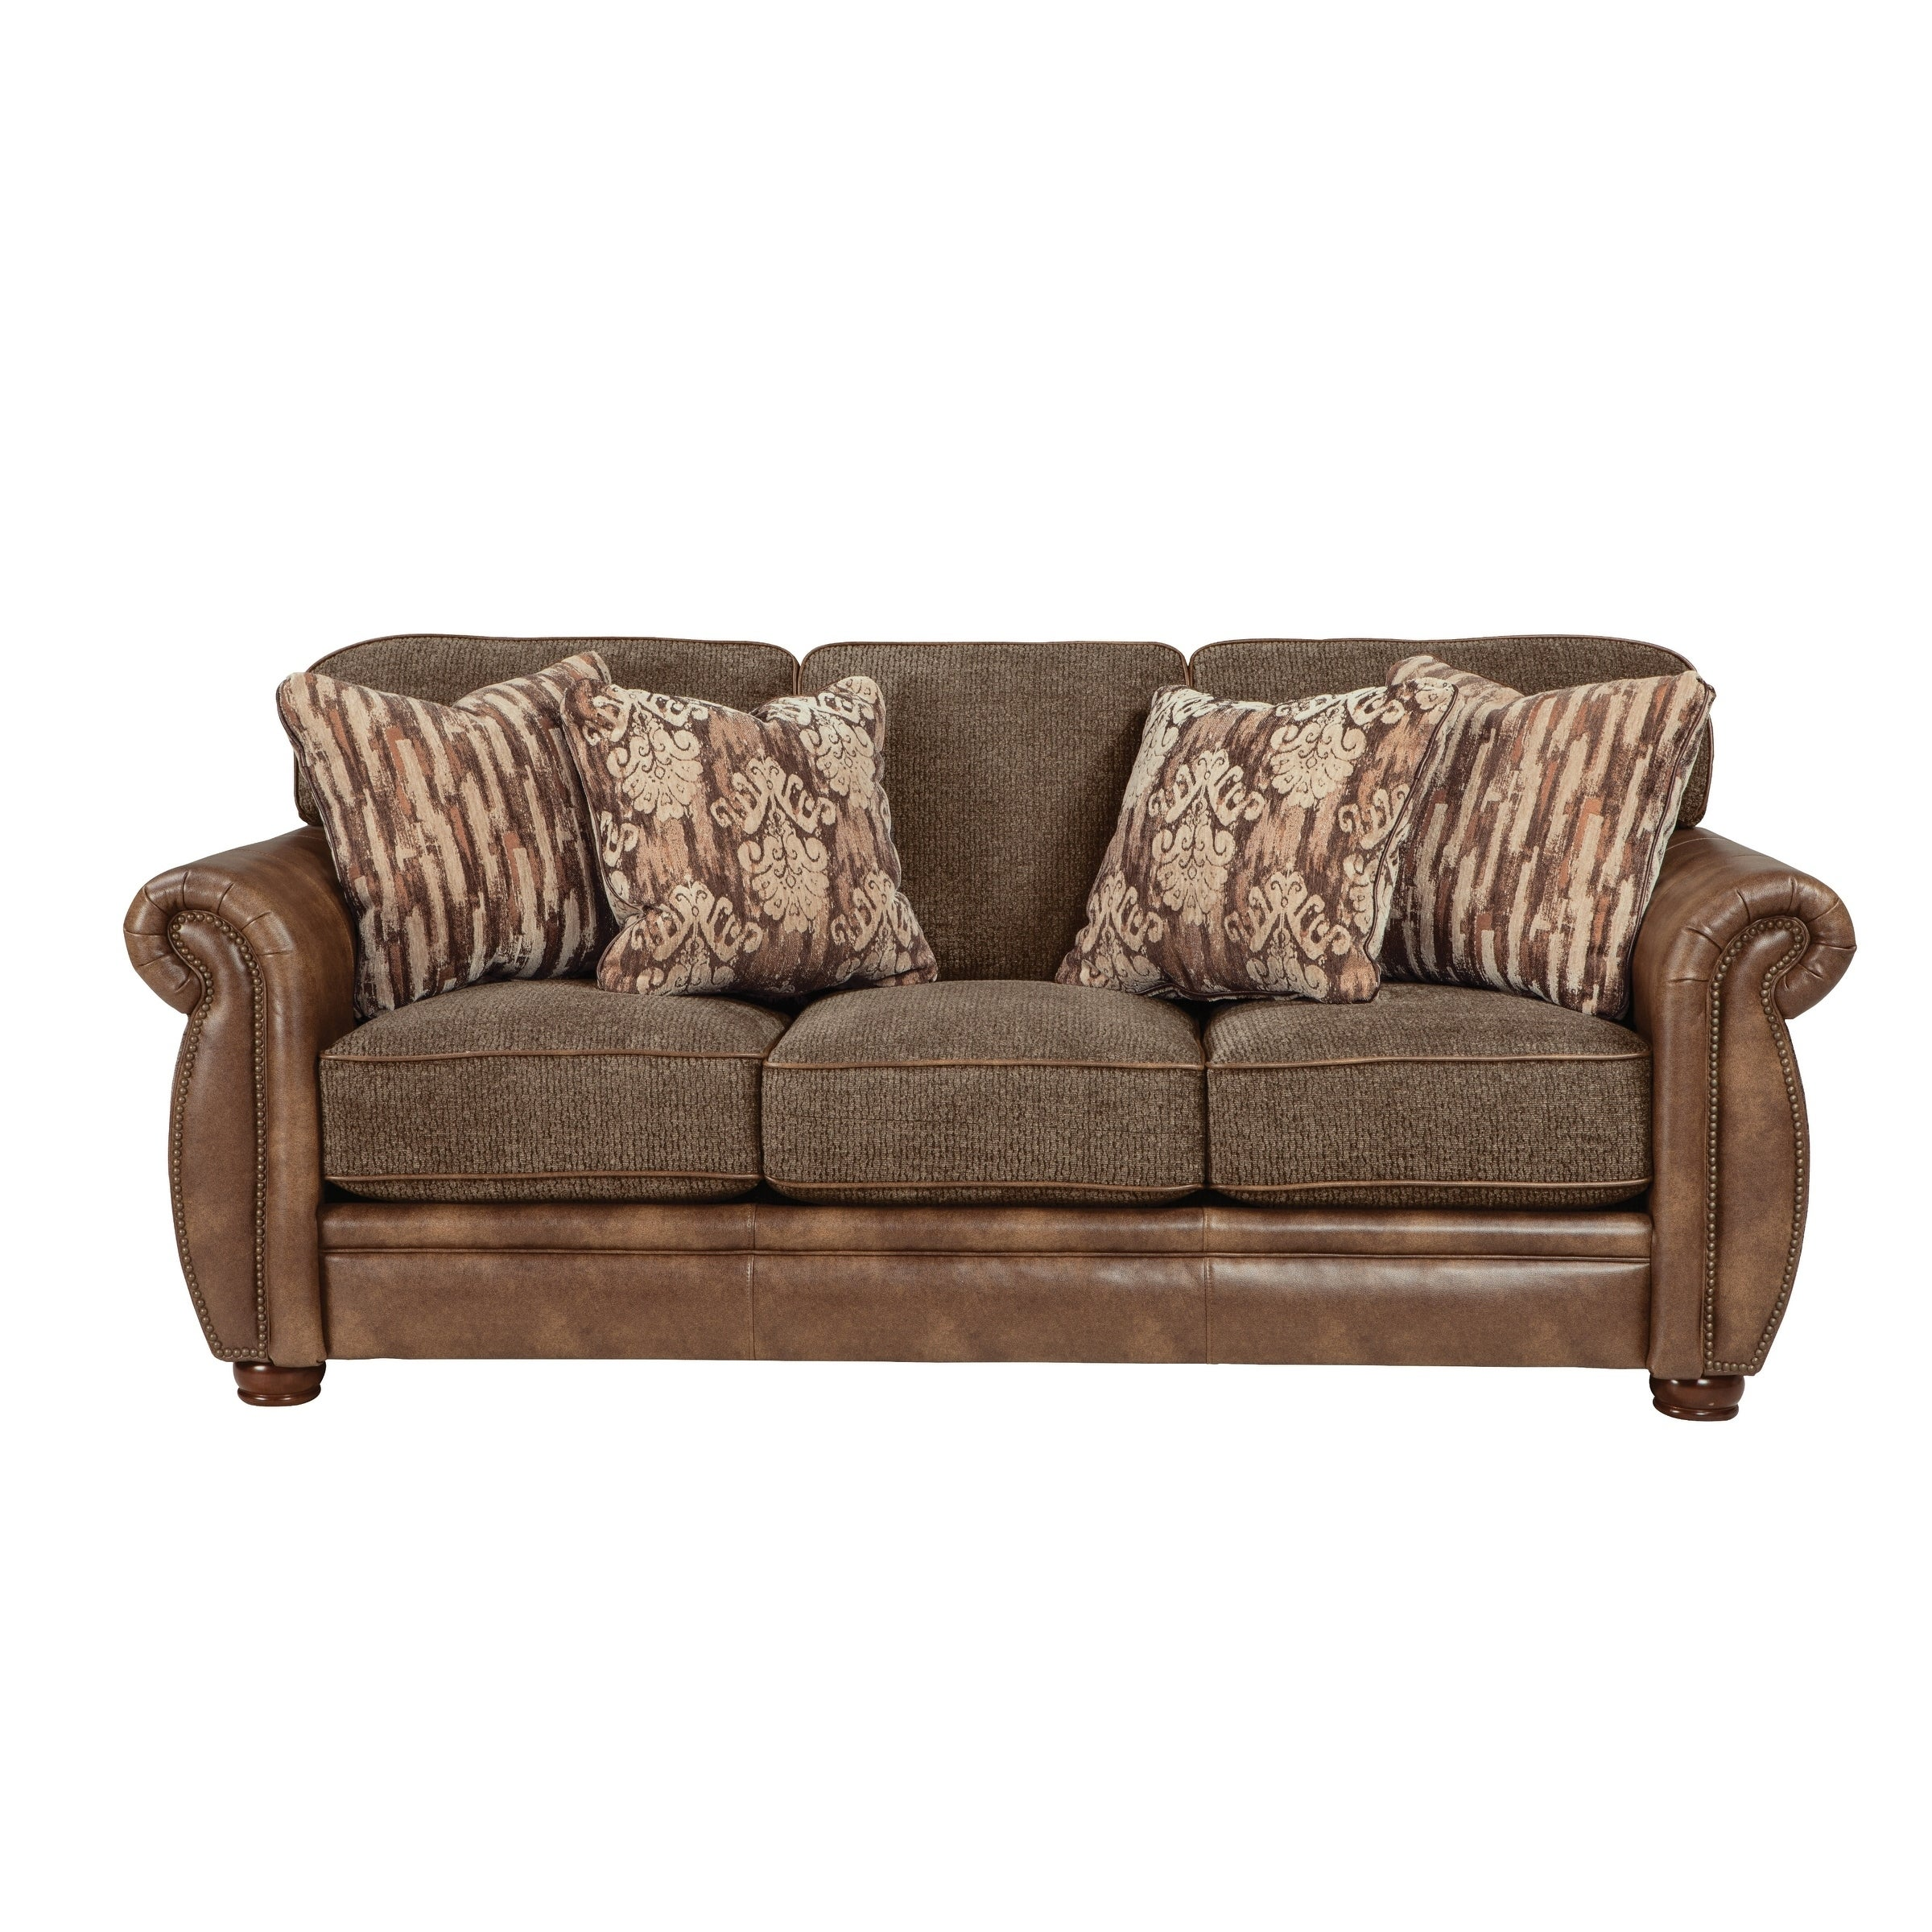 - Shop Helene Double Textured Fabric/Leather Sofa - Overstock - 29583267